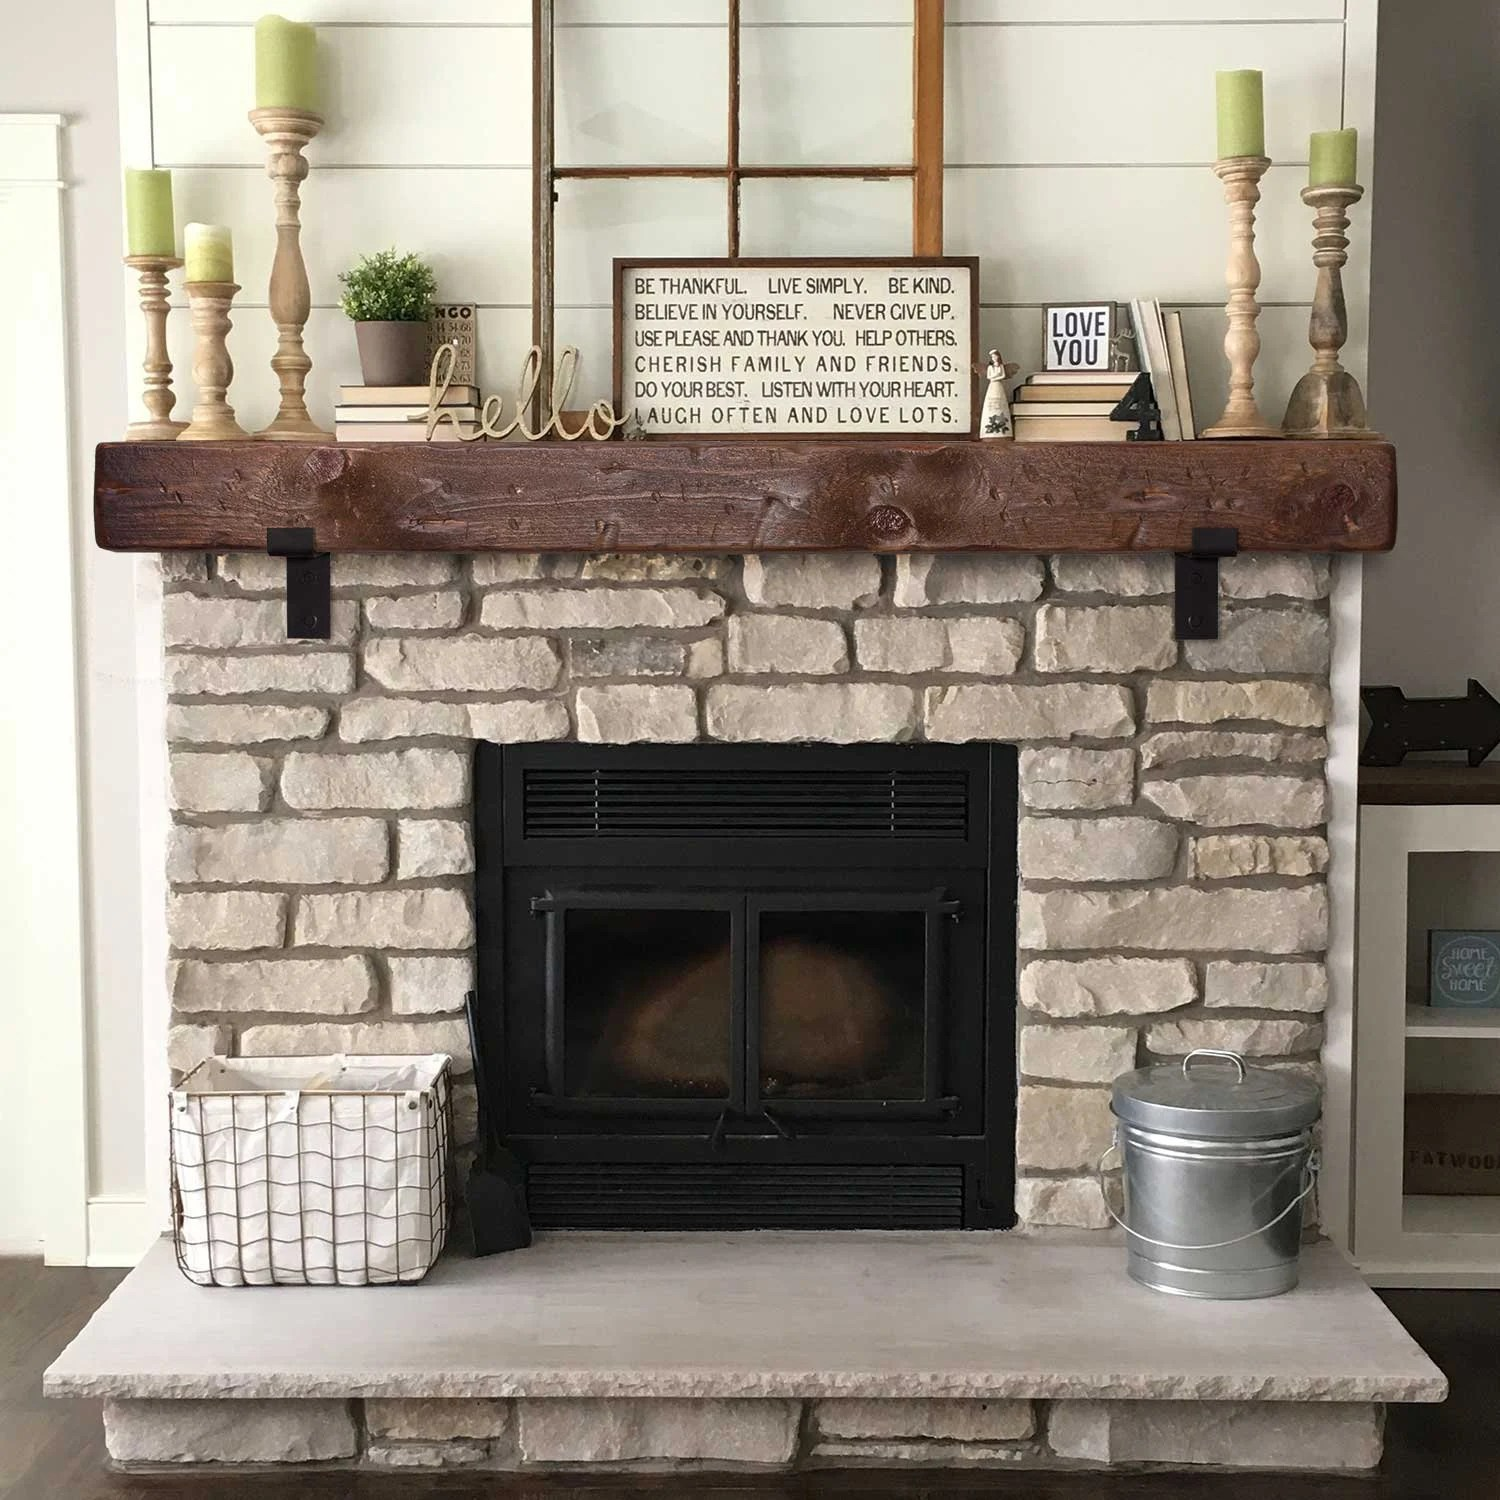 Faux Wood Beam Fireplace Mantels Uk Mantel With Metal Brackets Fireplace Mantel 5x6 6x6 Or 6x8 Mantle Rustic Mantle Floating Barn Wood Barn Beam Custom Lengths